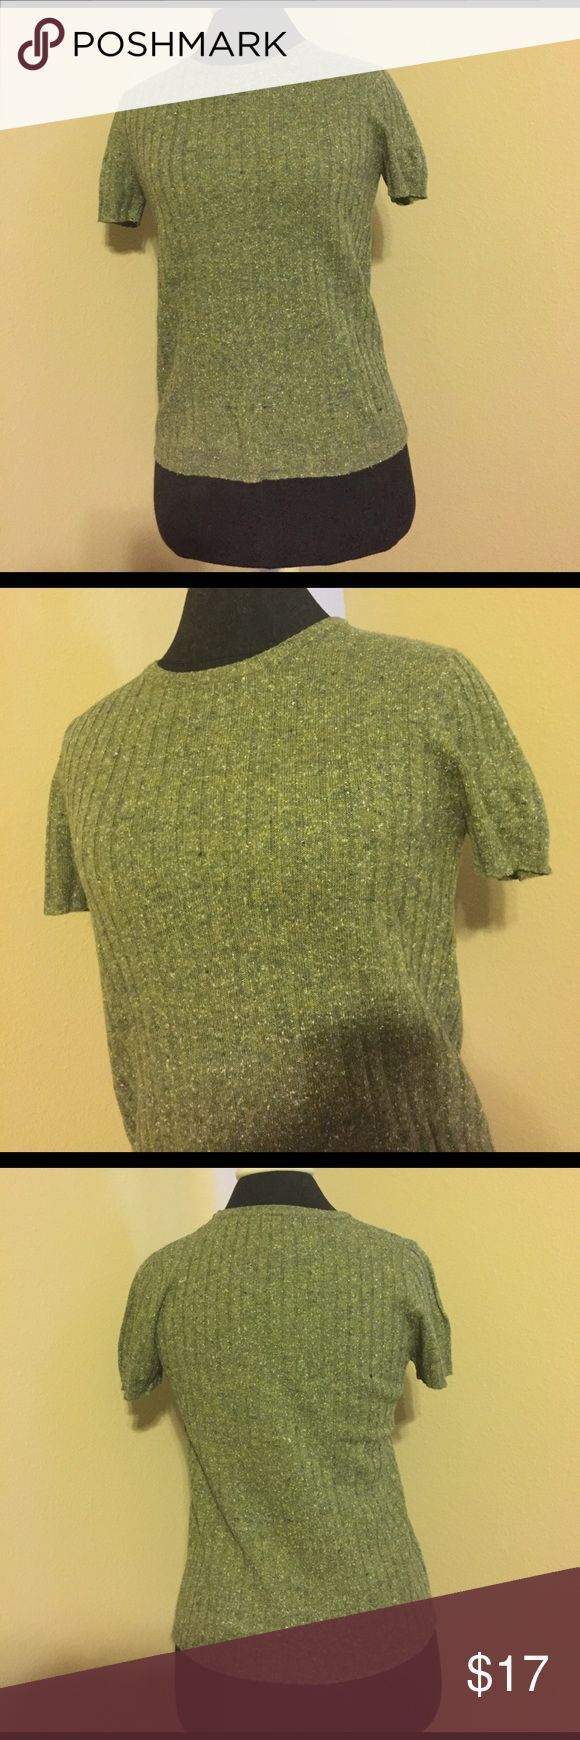 Old Navy Short Sleeve Green Sweater Top This top is a Ribbed sweater like material in a lovely pea green shade. Old Navy Tops Tees - Short Sleeve